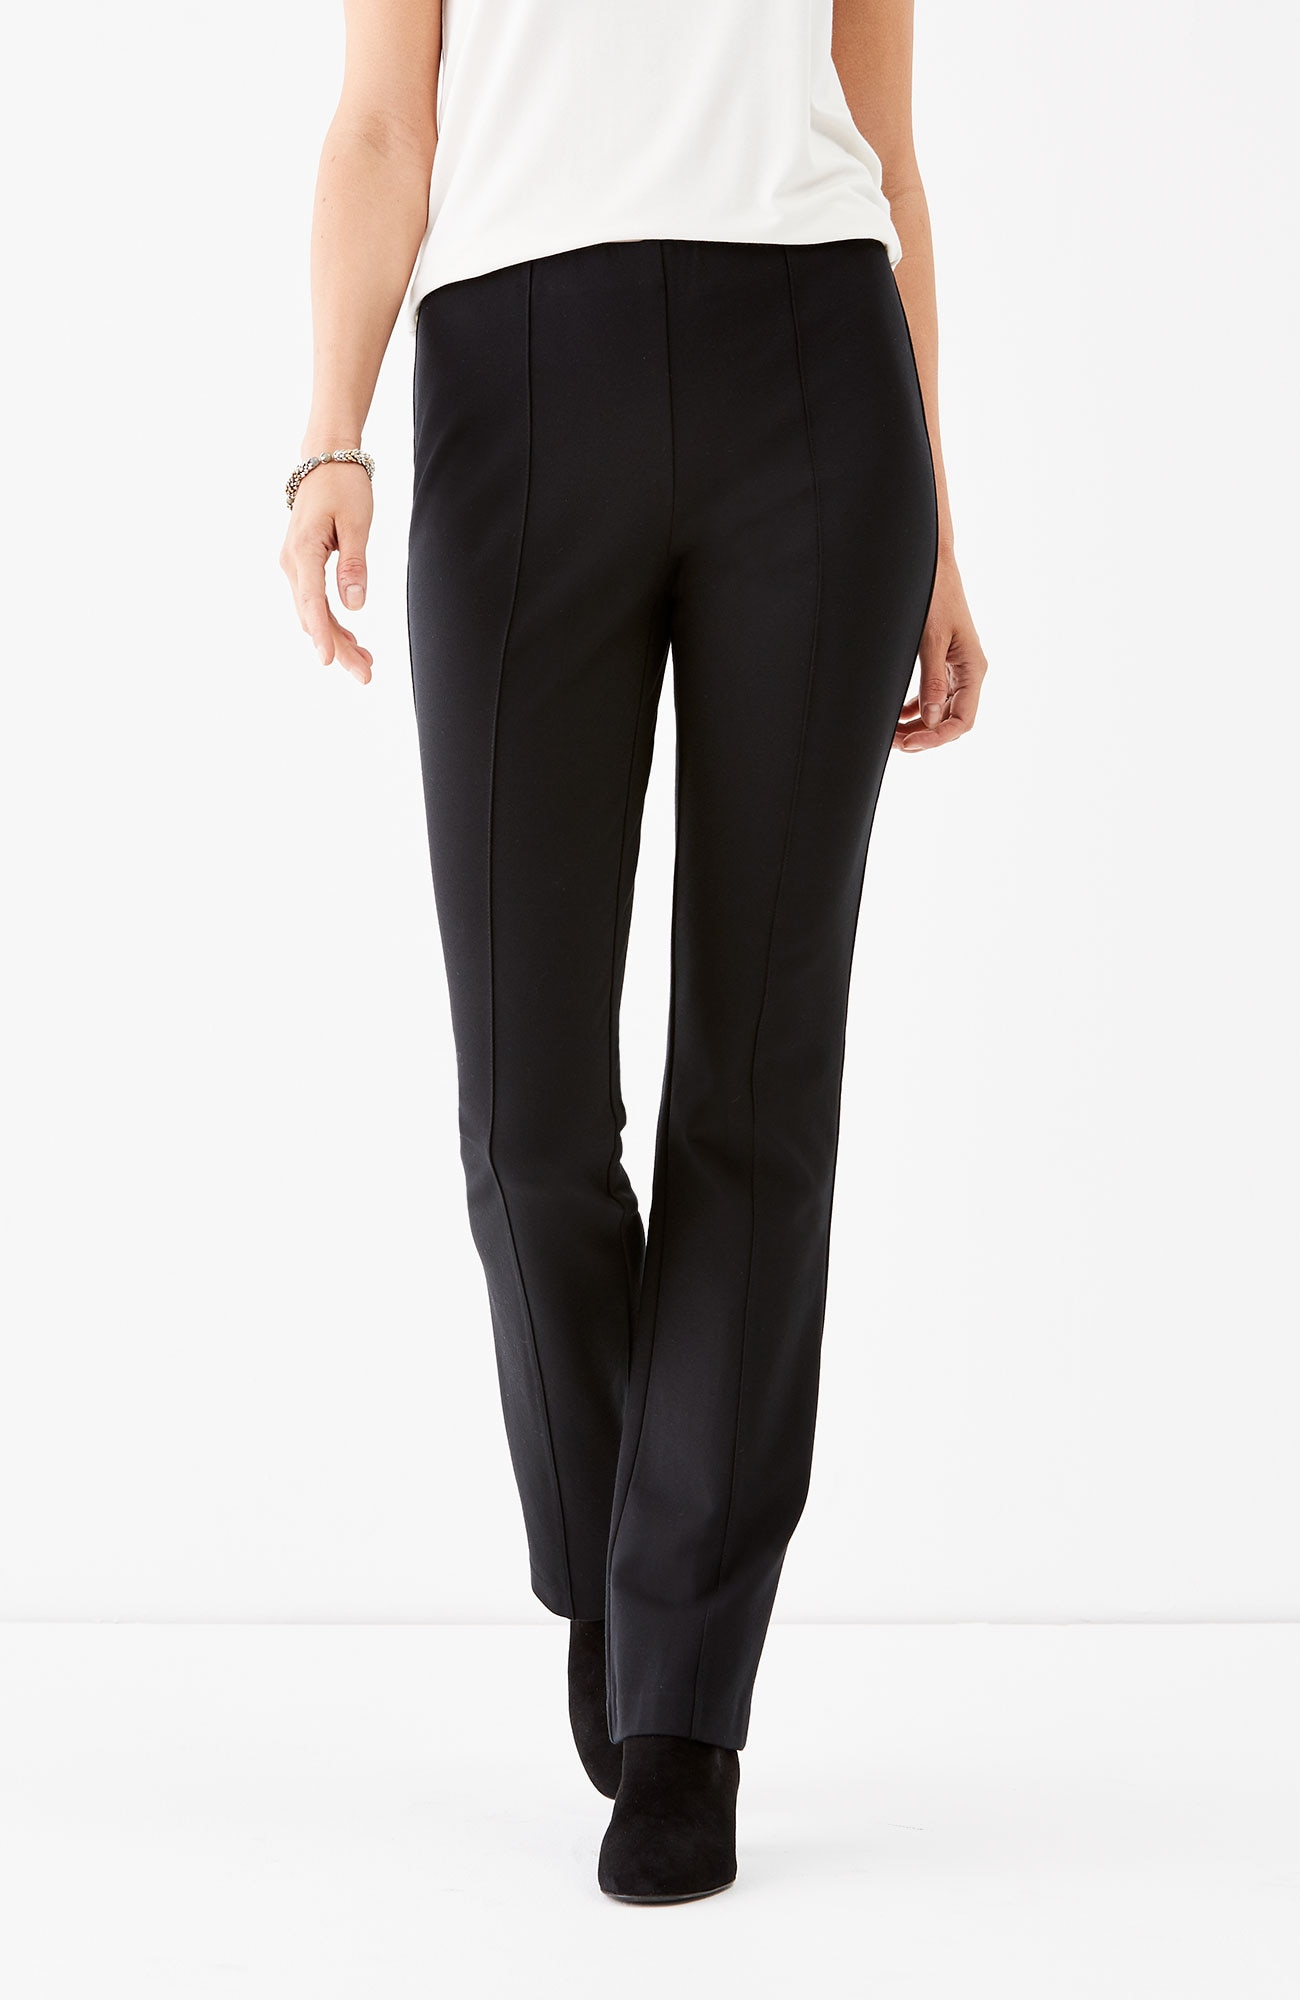 ponte knit barely boot-cut pants